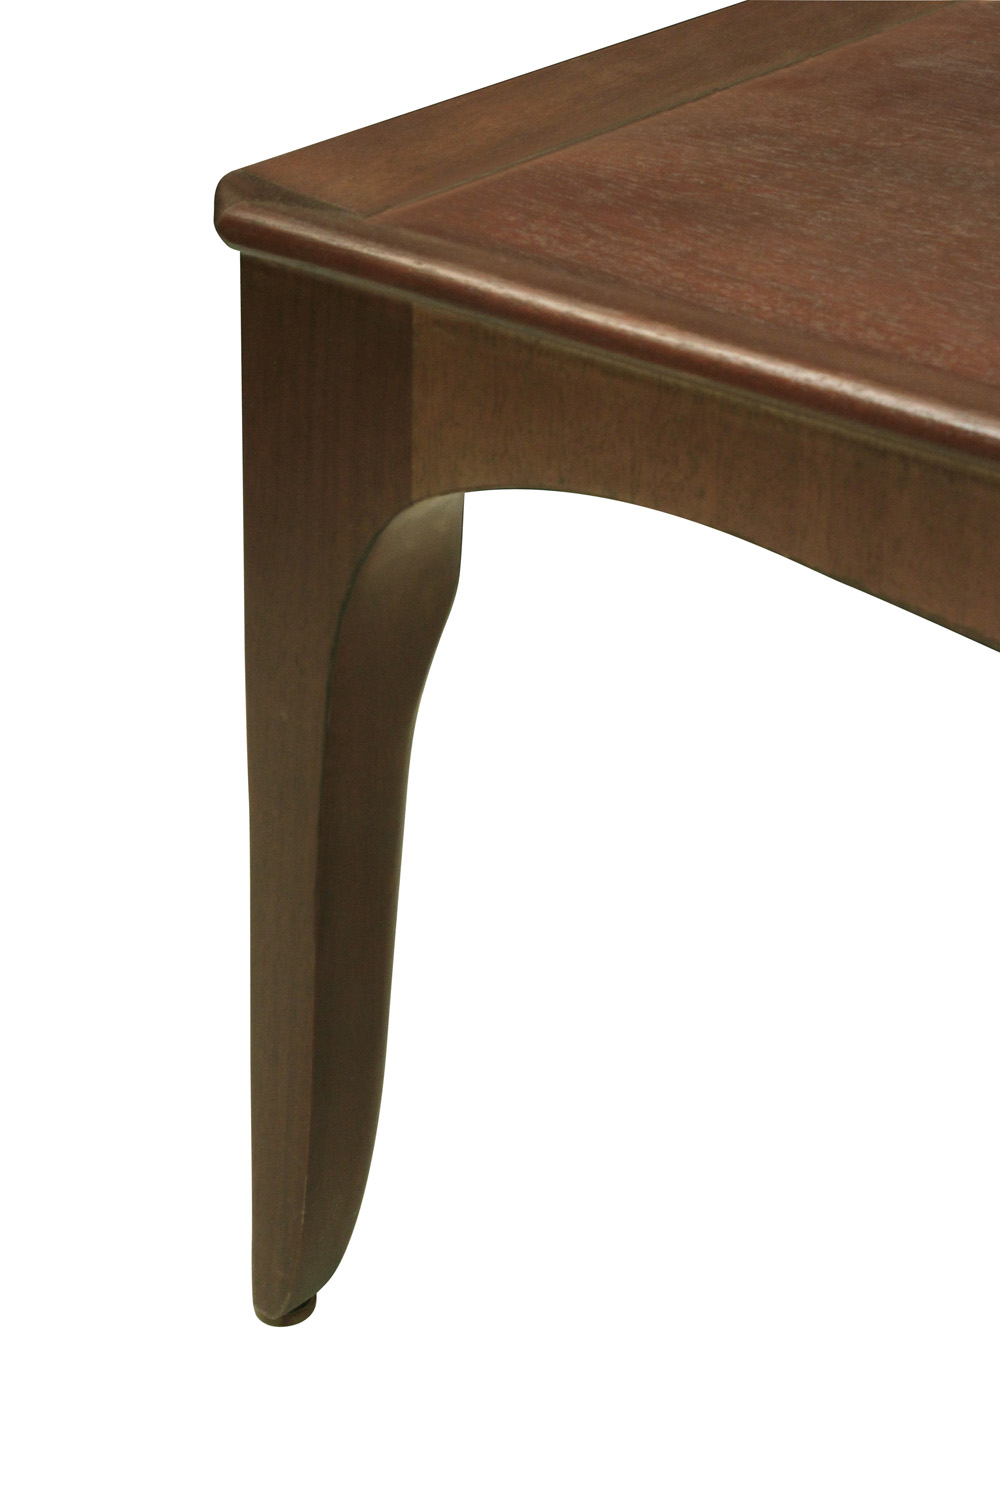 Dunbar 35 janus-edge rect 40s coffeetable63 detail1 hires.jpg